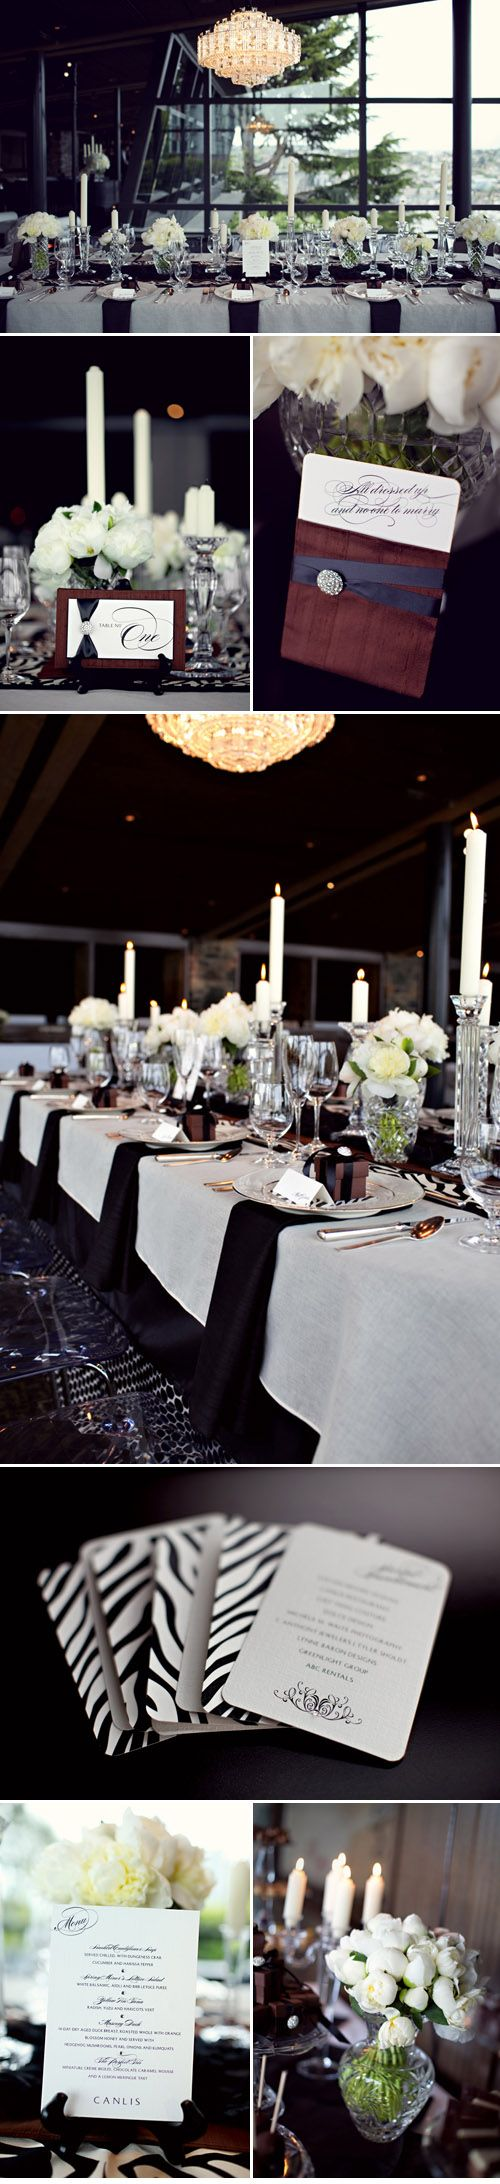 128 best images about a black tie event on pinterest white flowers straws and dessert tables. Black Bedroom Furniture Sets. Home Design Ideas